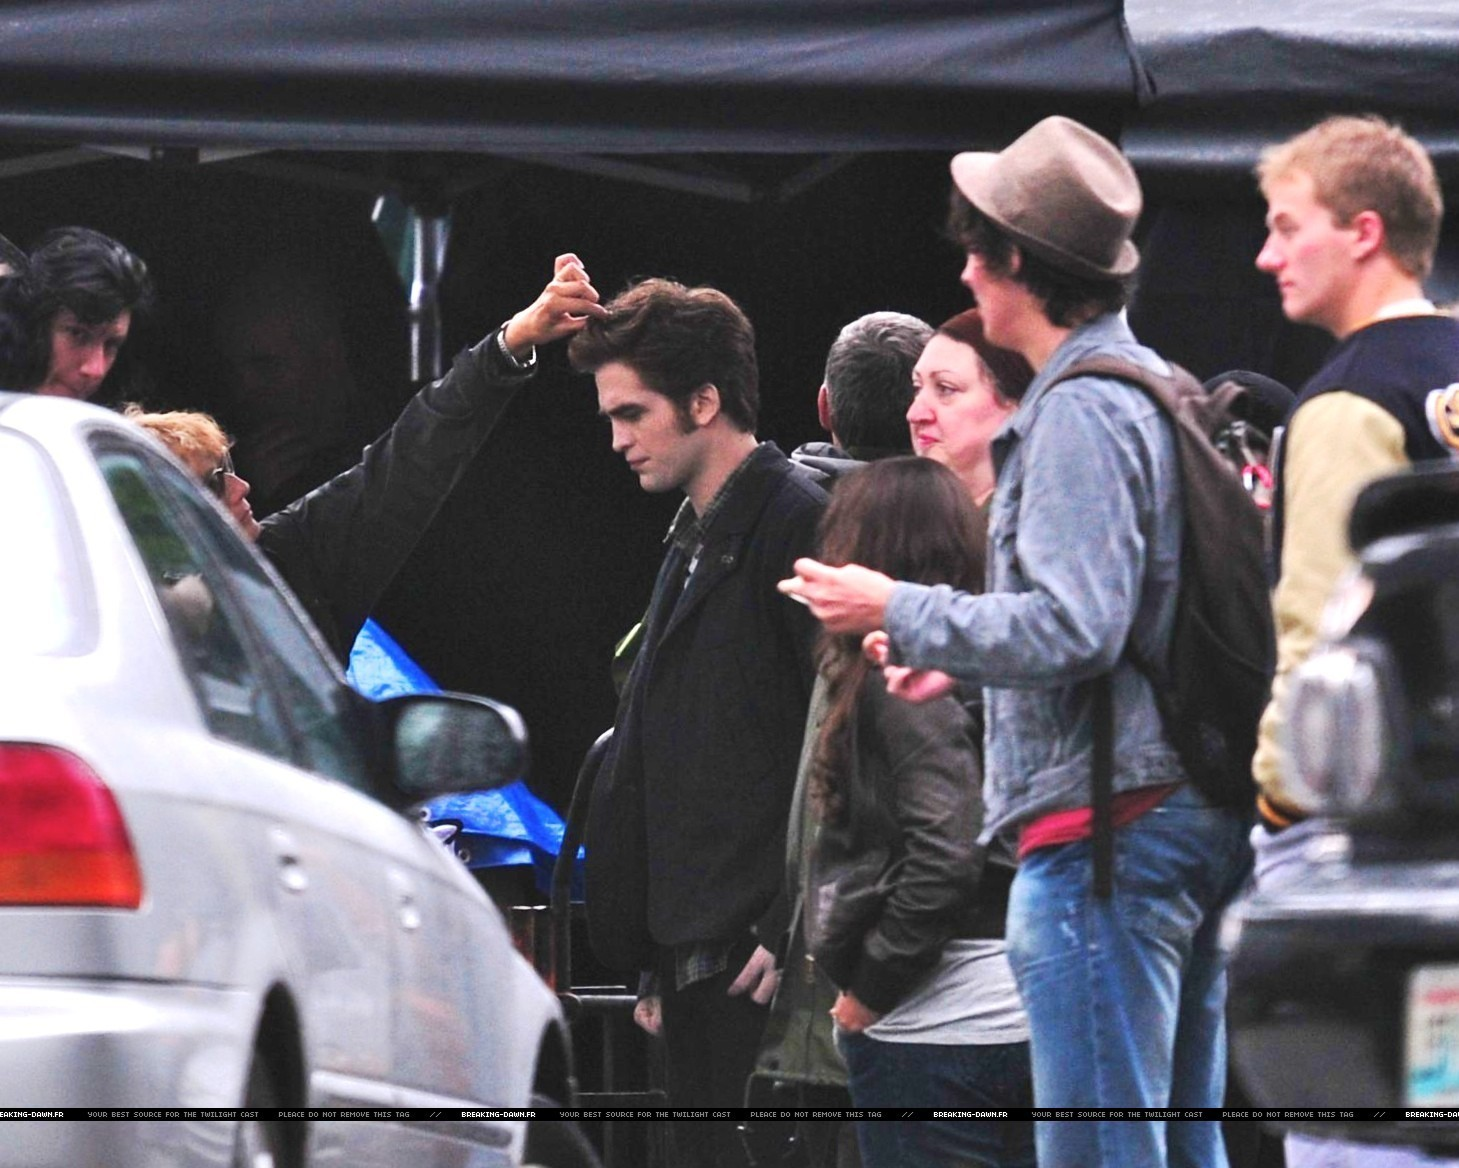 http://images2.fanpop.com/images/photos/8000000/Rob-kristen-on-the-set-of-Eclipse-yesterday-twilight-series-8080091-1459-1168.jpg